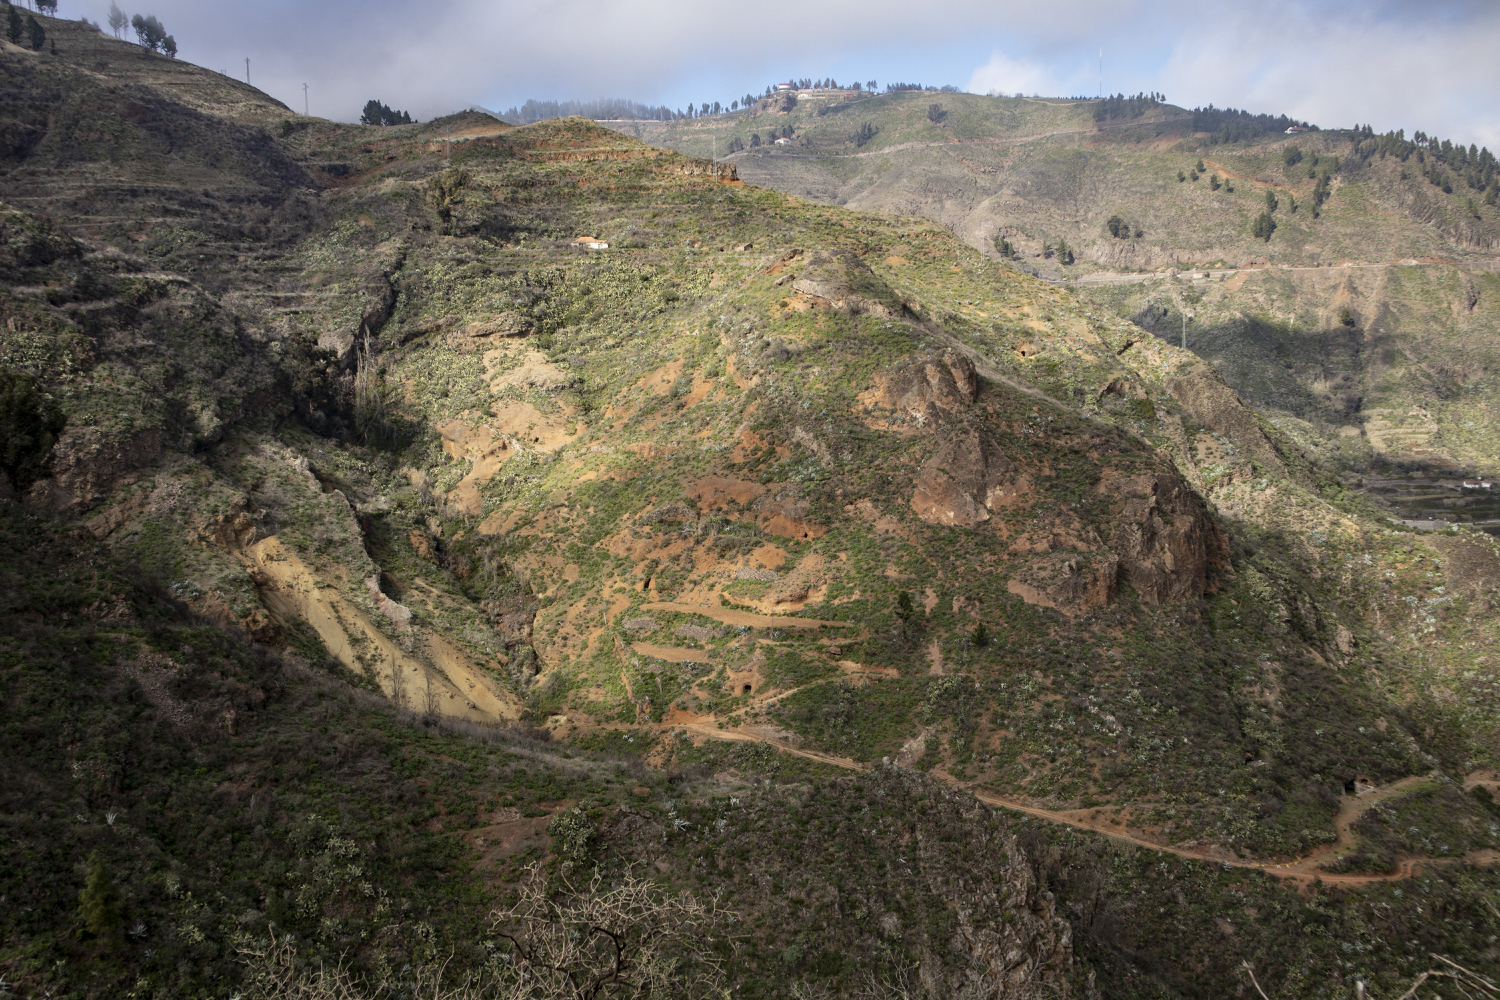 View into the Barranco de la Mina